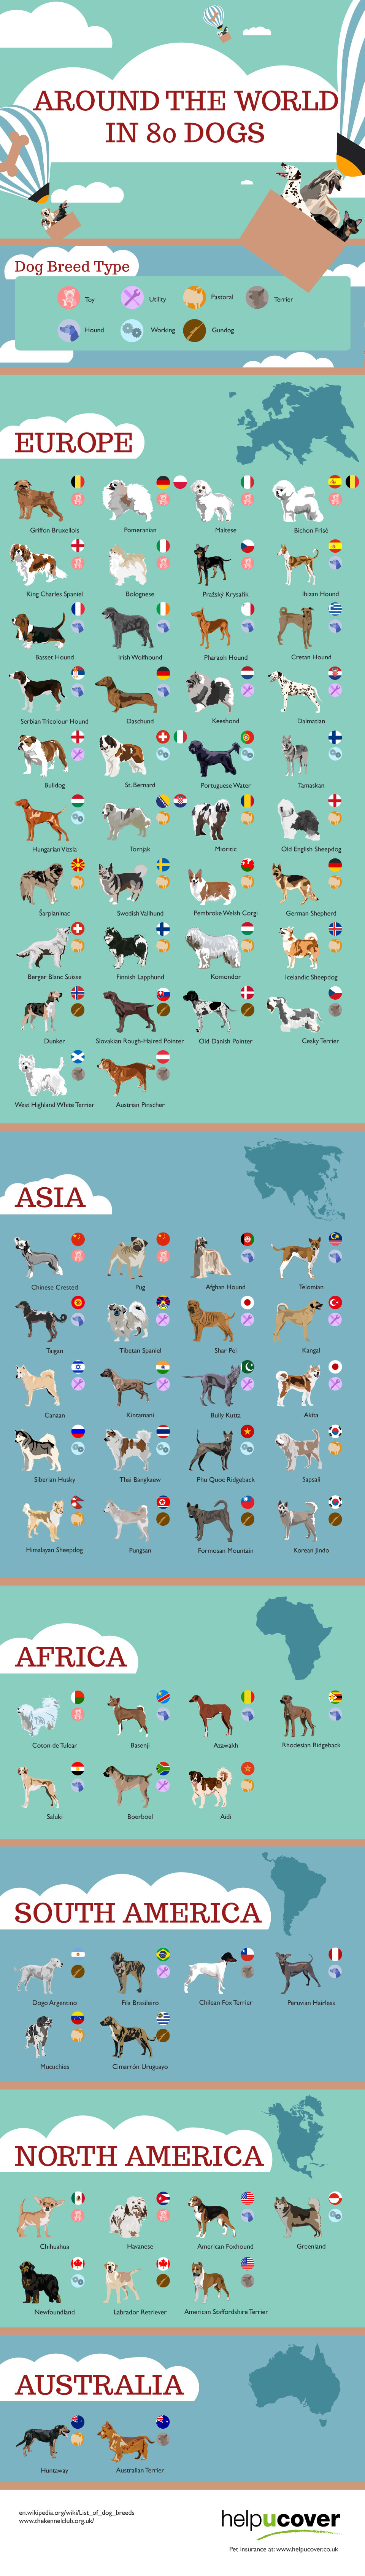 primal canine dog training around the world in 80 dogs